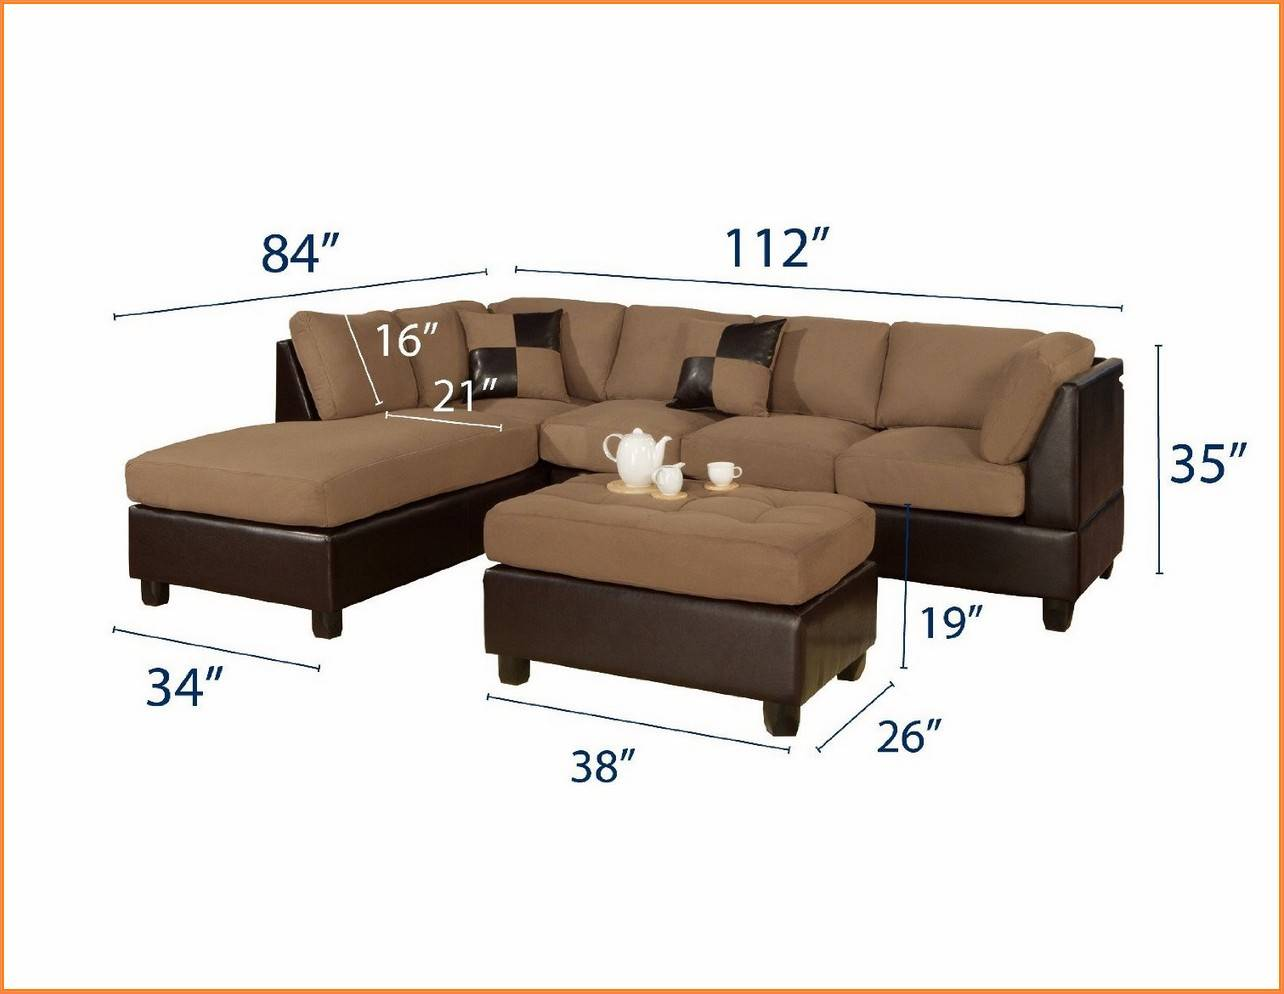 Sectional Sofa Measurements Sofa Beds Design Simple Modern Sectional Sizes Decor For Thesofa